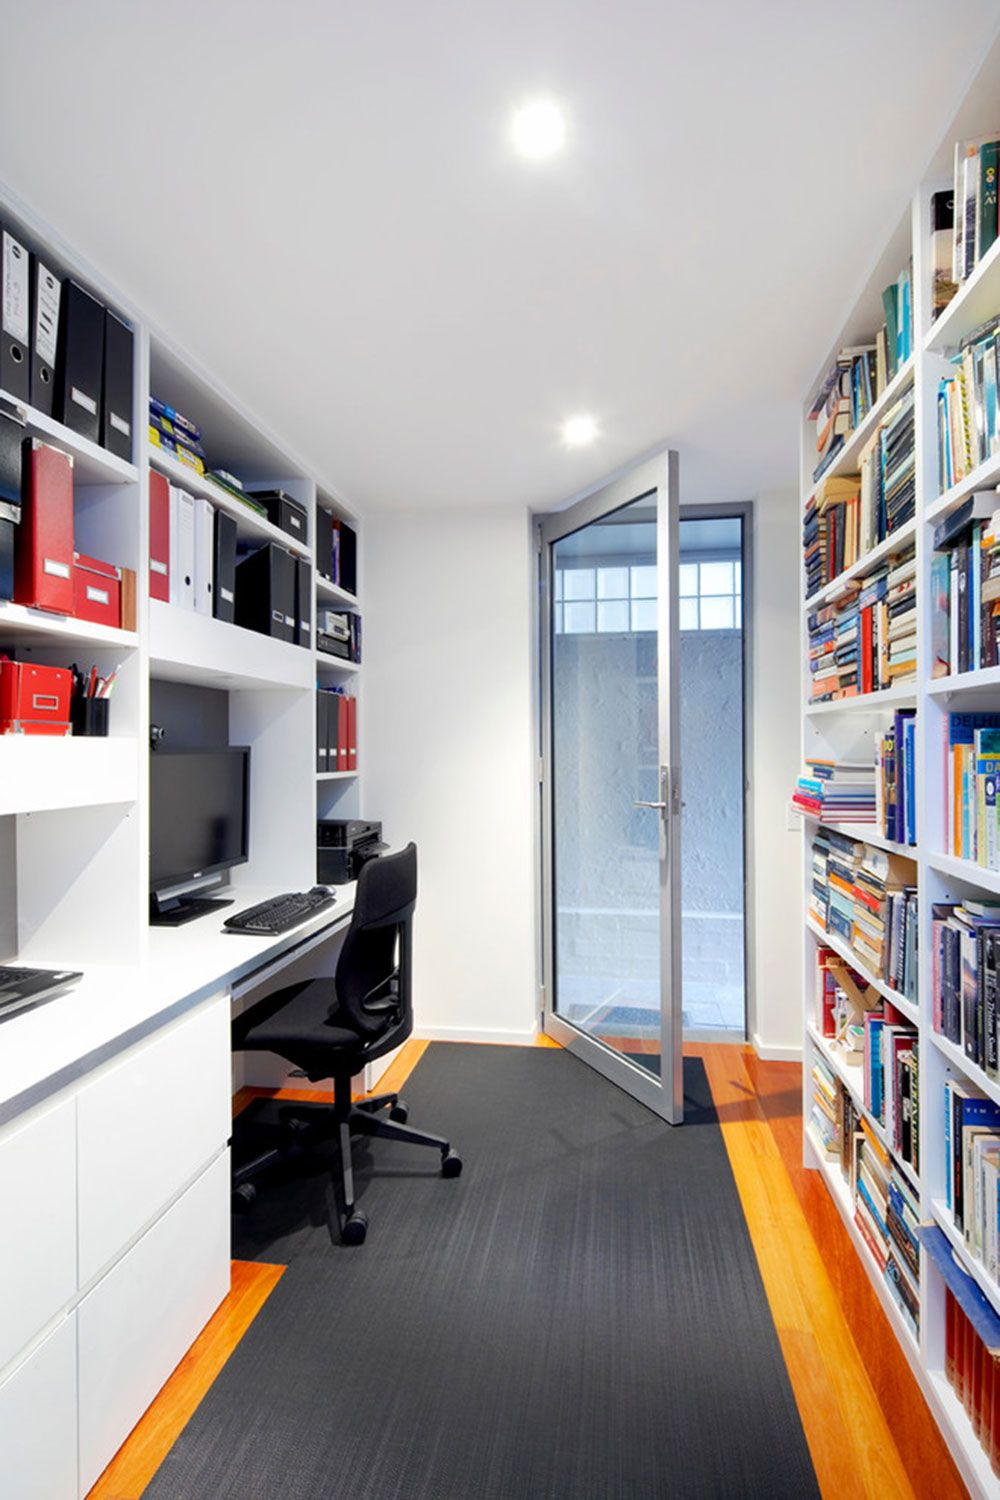 Decorating Your Study Room With Style | Study rooms, Decorating and Room